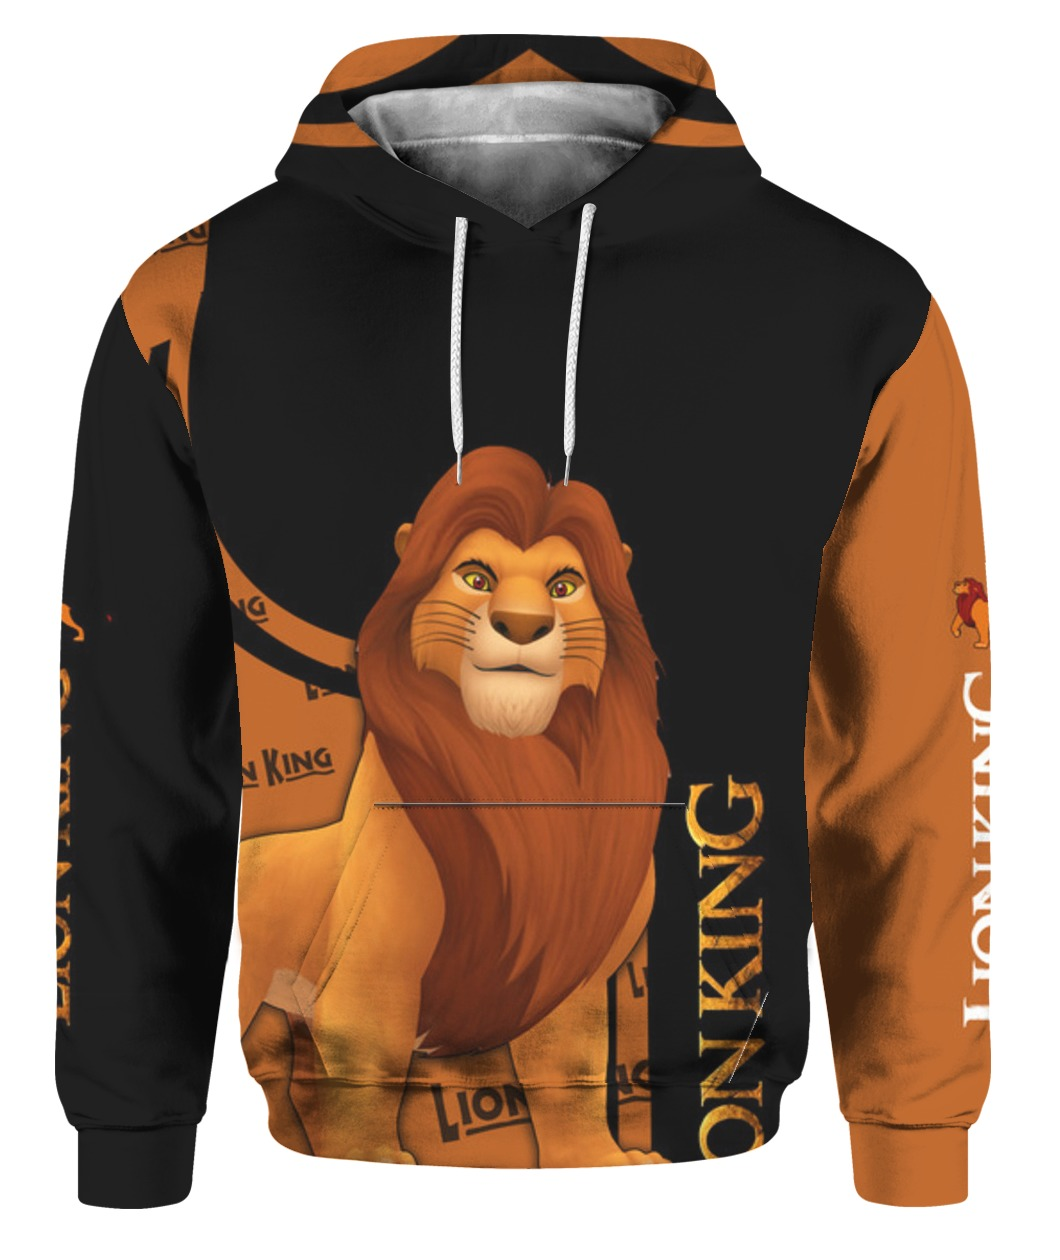 The lion king all over printed hoodie 2